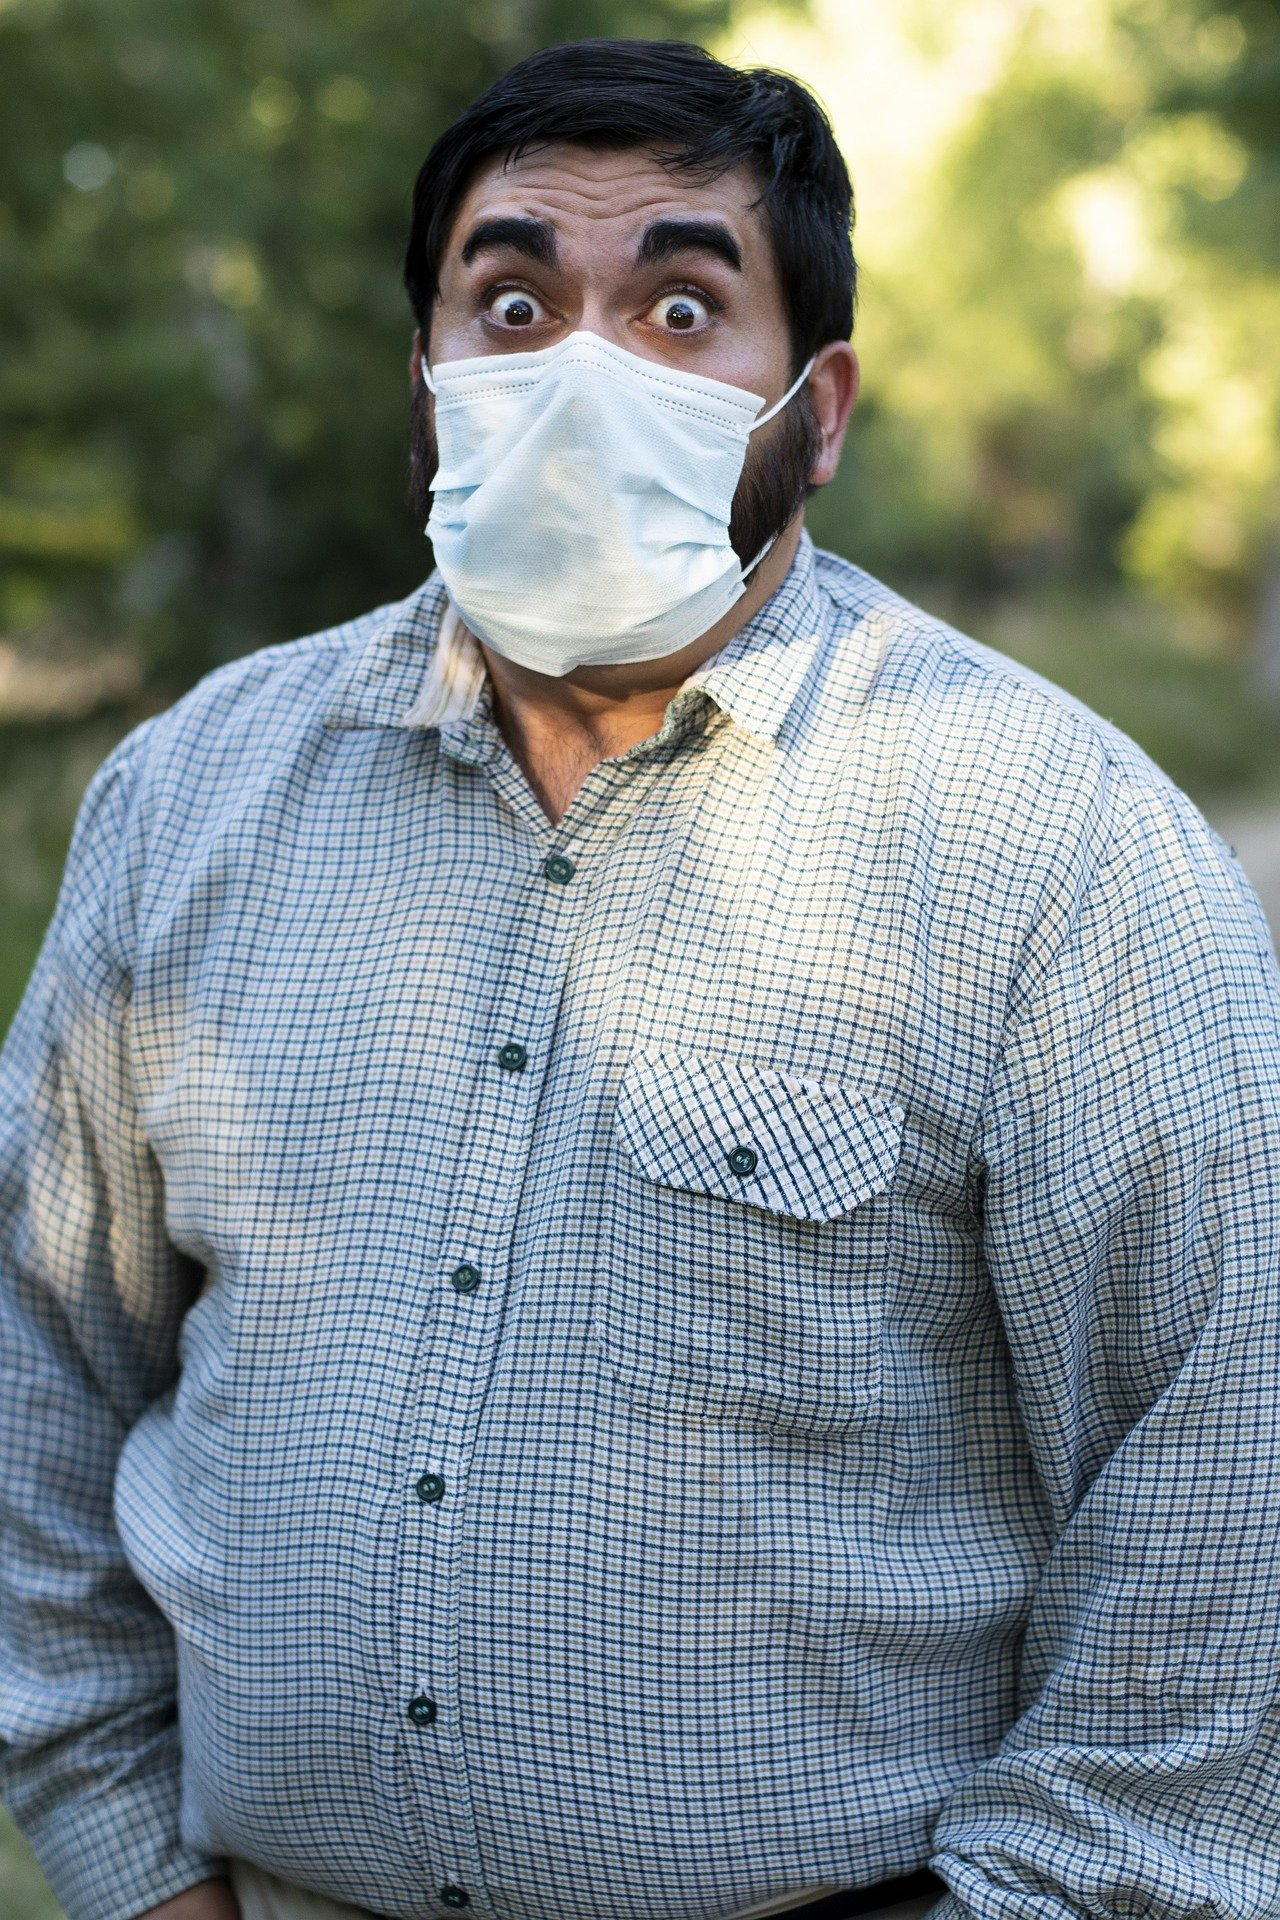 A frightened man standing in an open area with a face mask on   Photo: Pixabay/Sean Corcoran